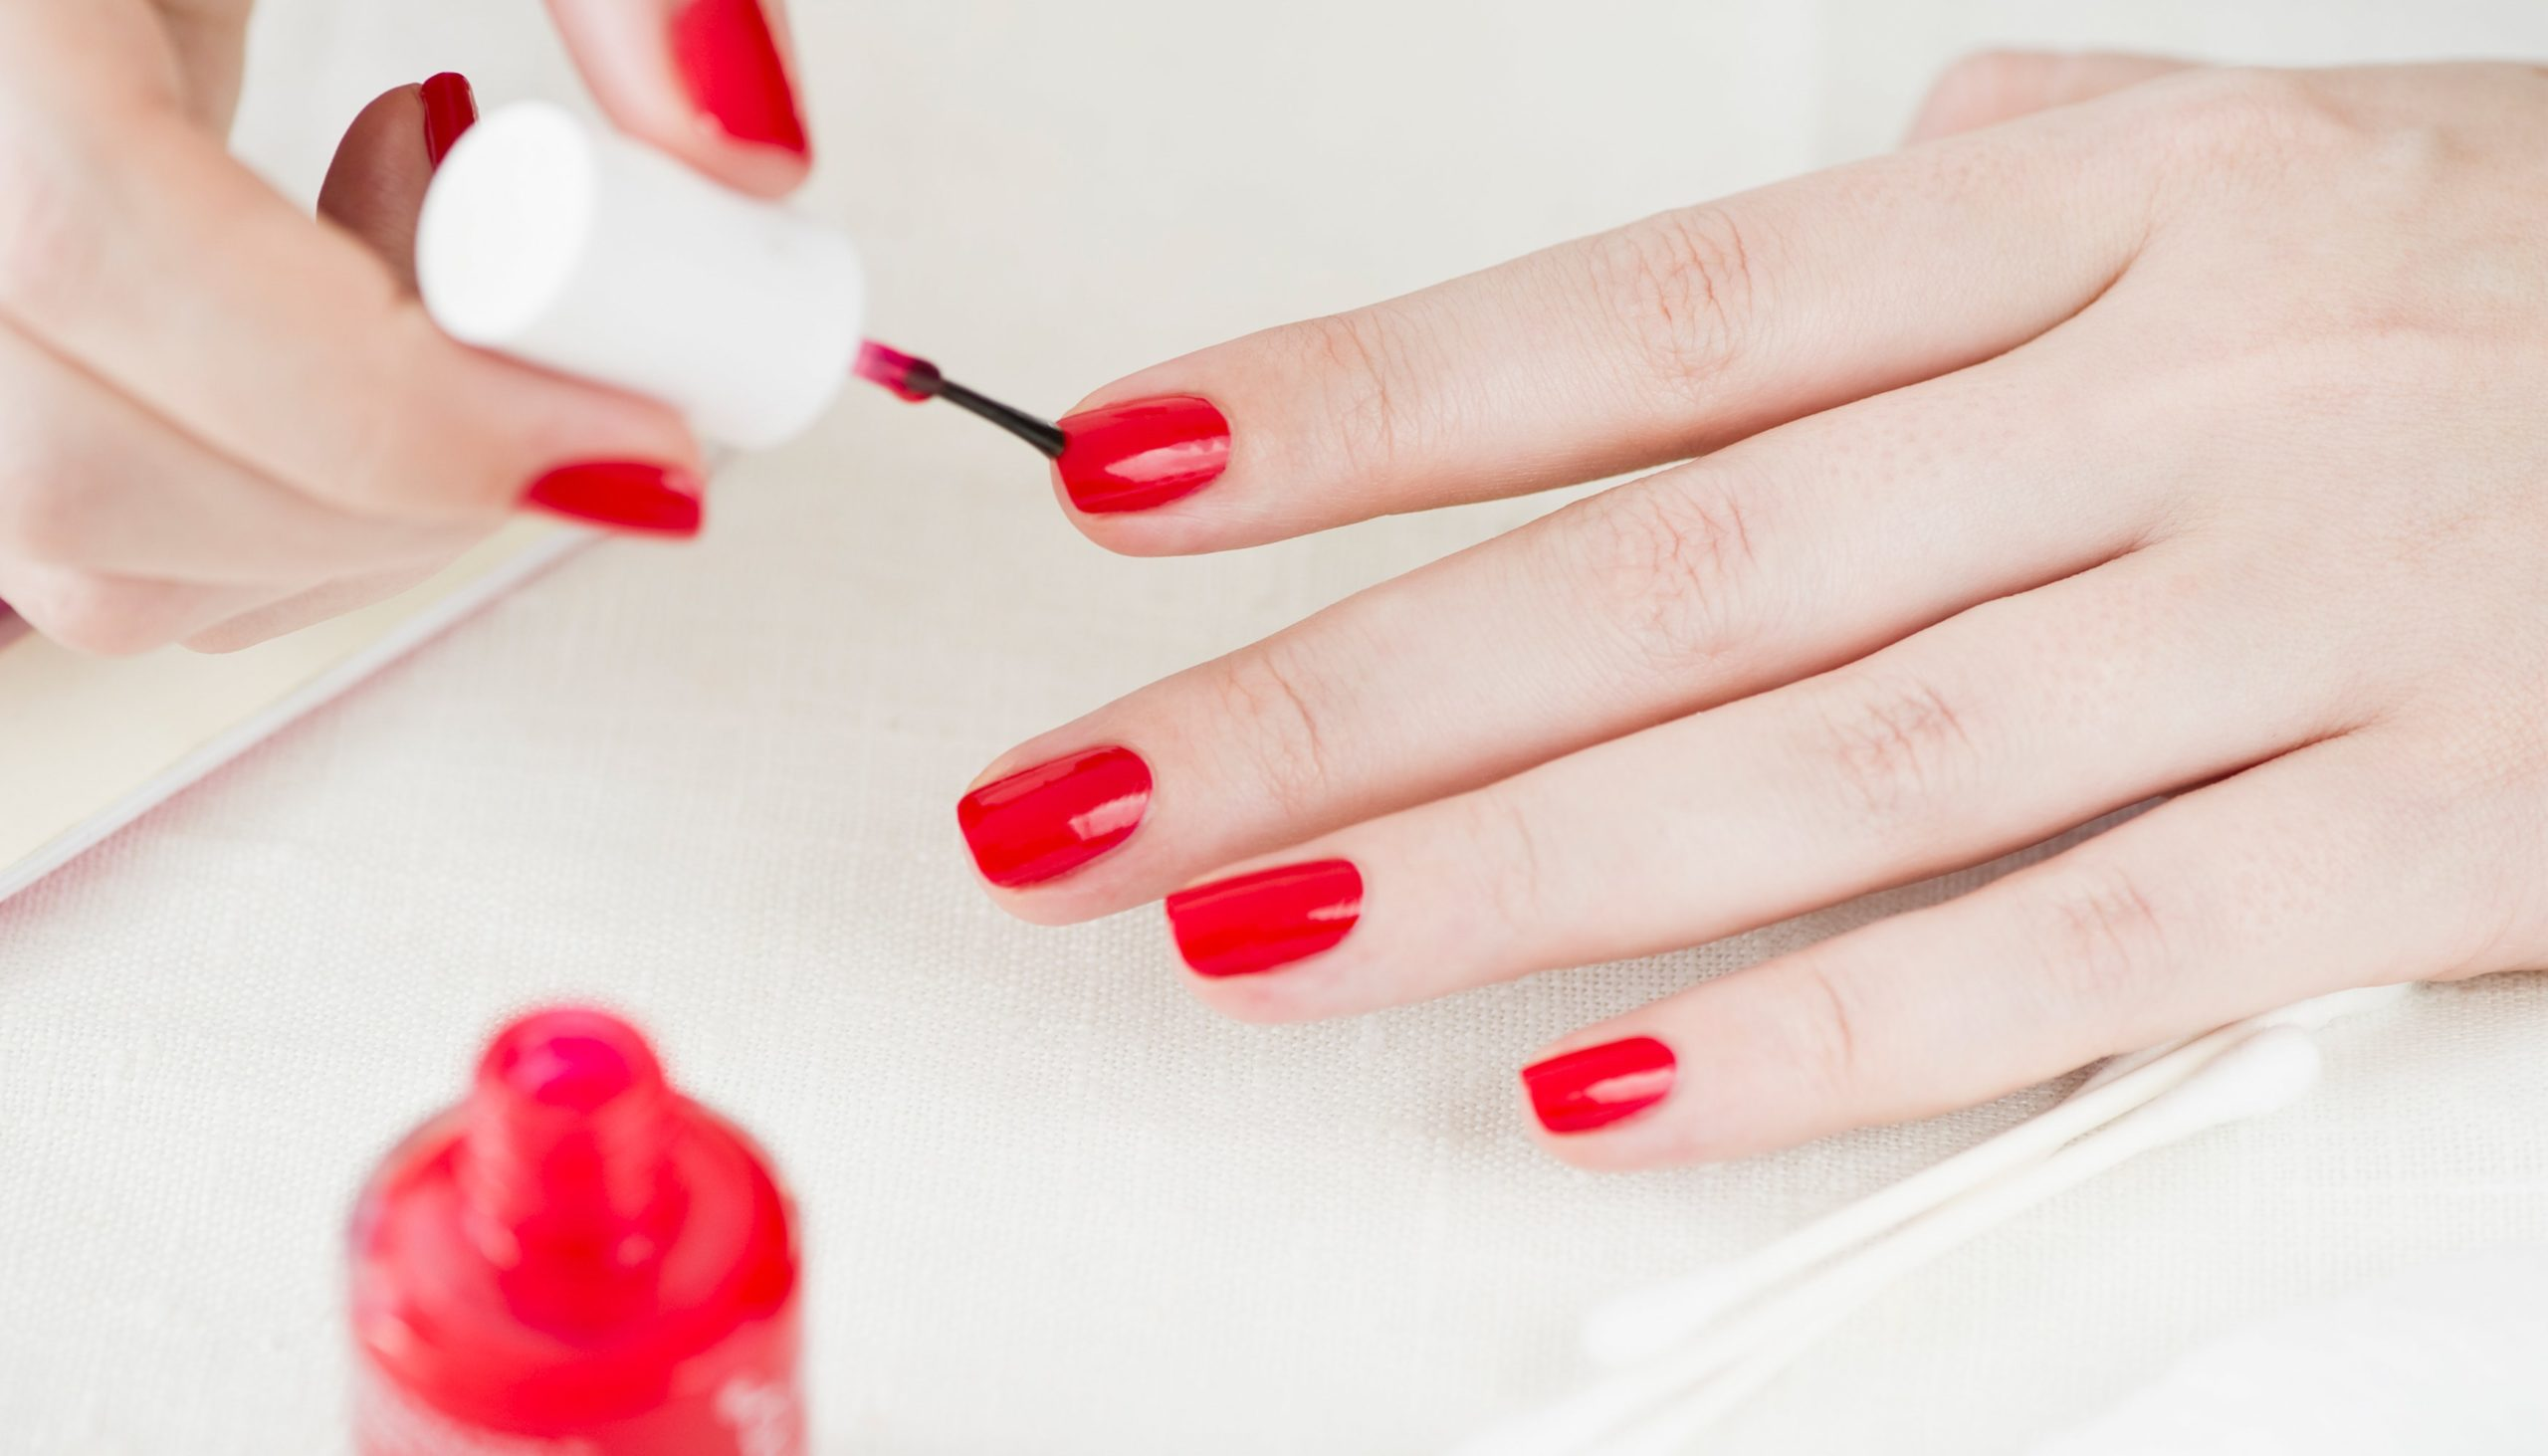 The Right Nail Polish within Your Routine